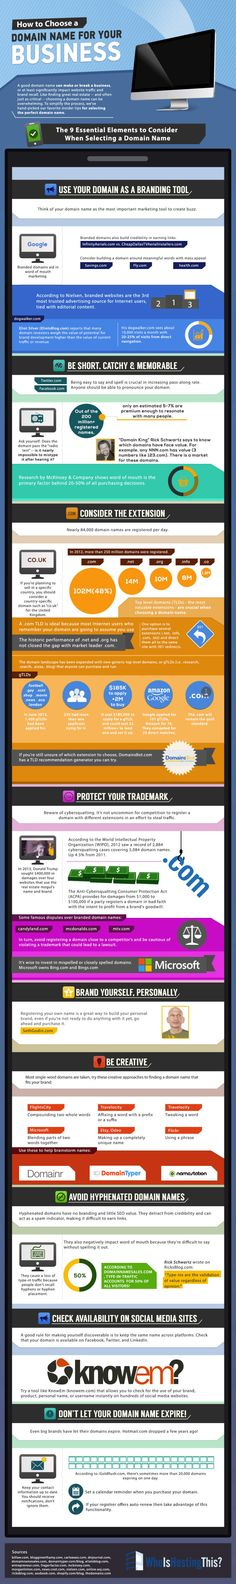 How to choose domain name for your business #infografia #infographic #marketing